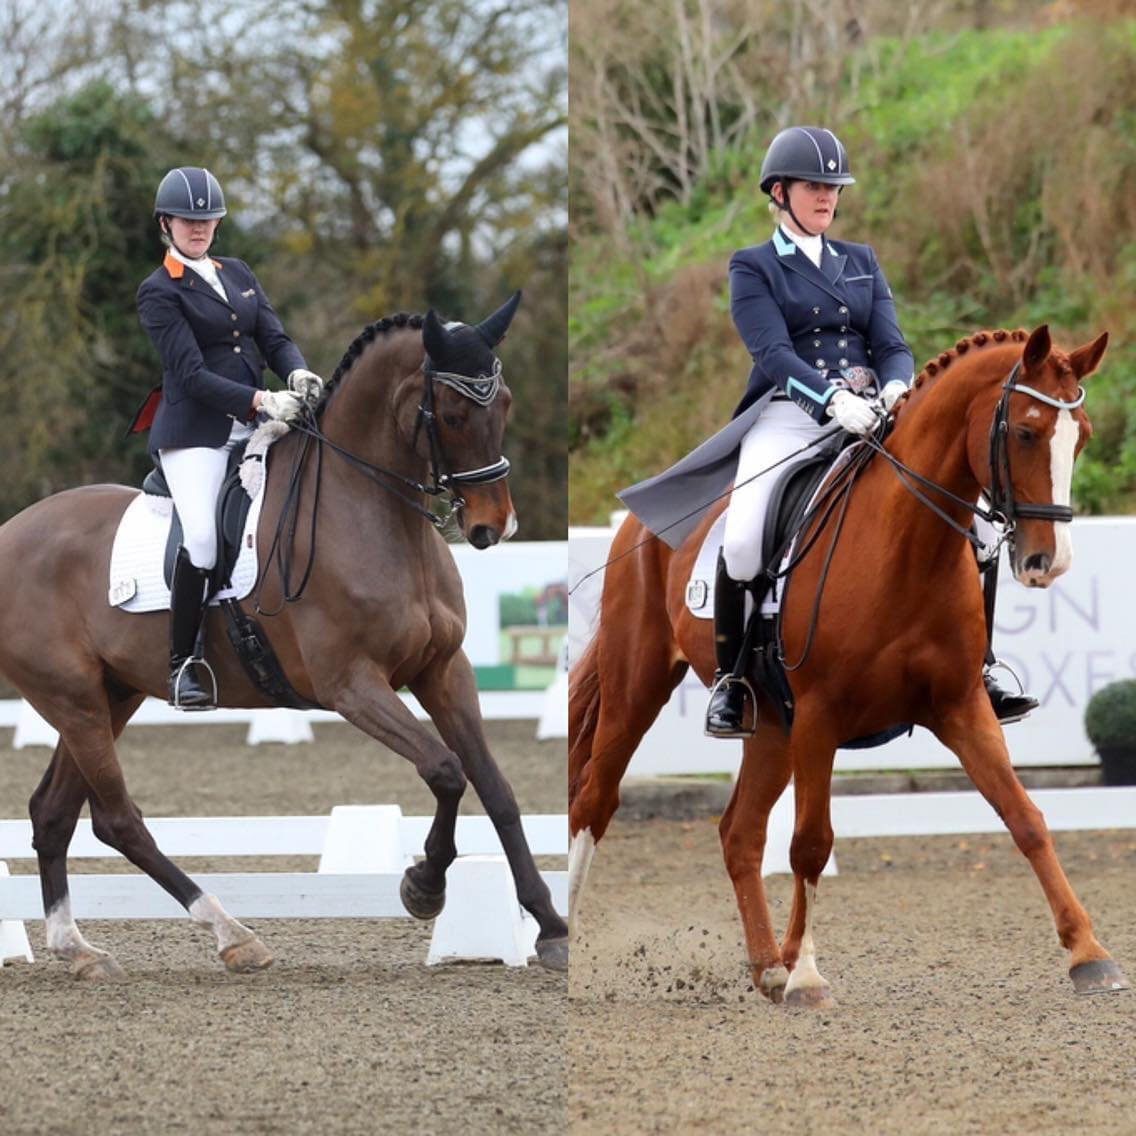 Katy Applin signs both of her dancing dressage horses up on subscription.